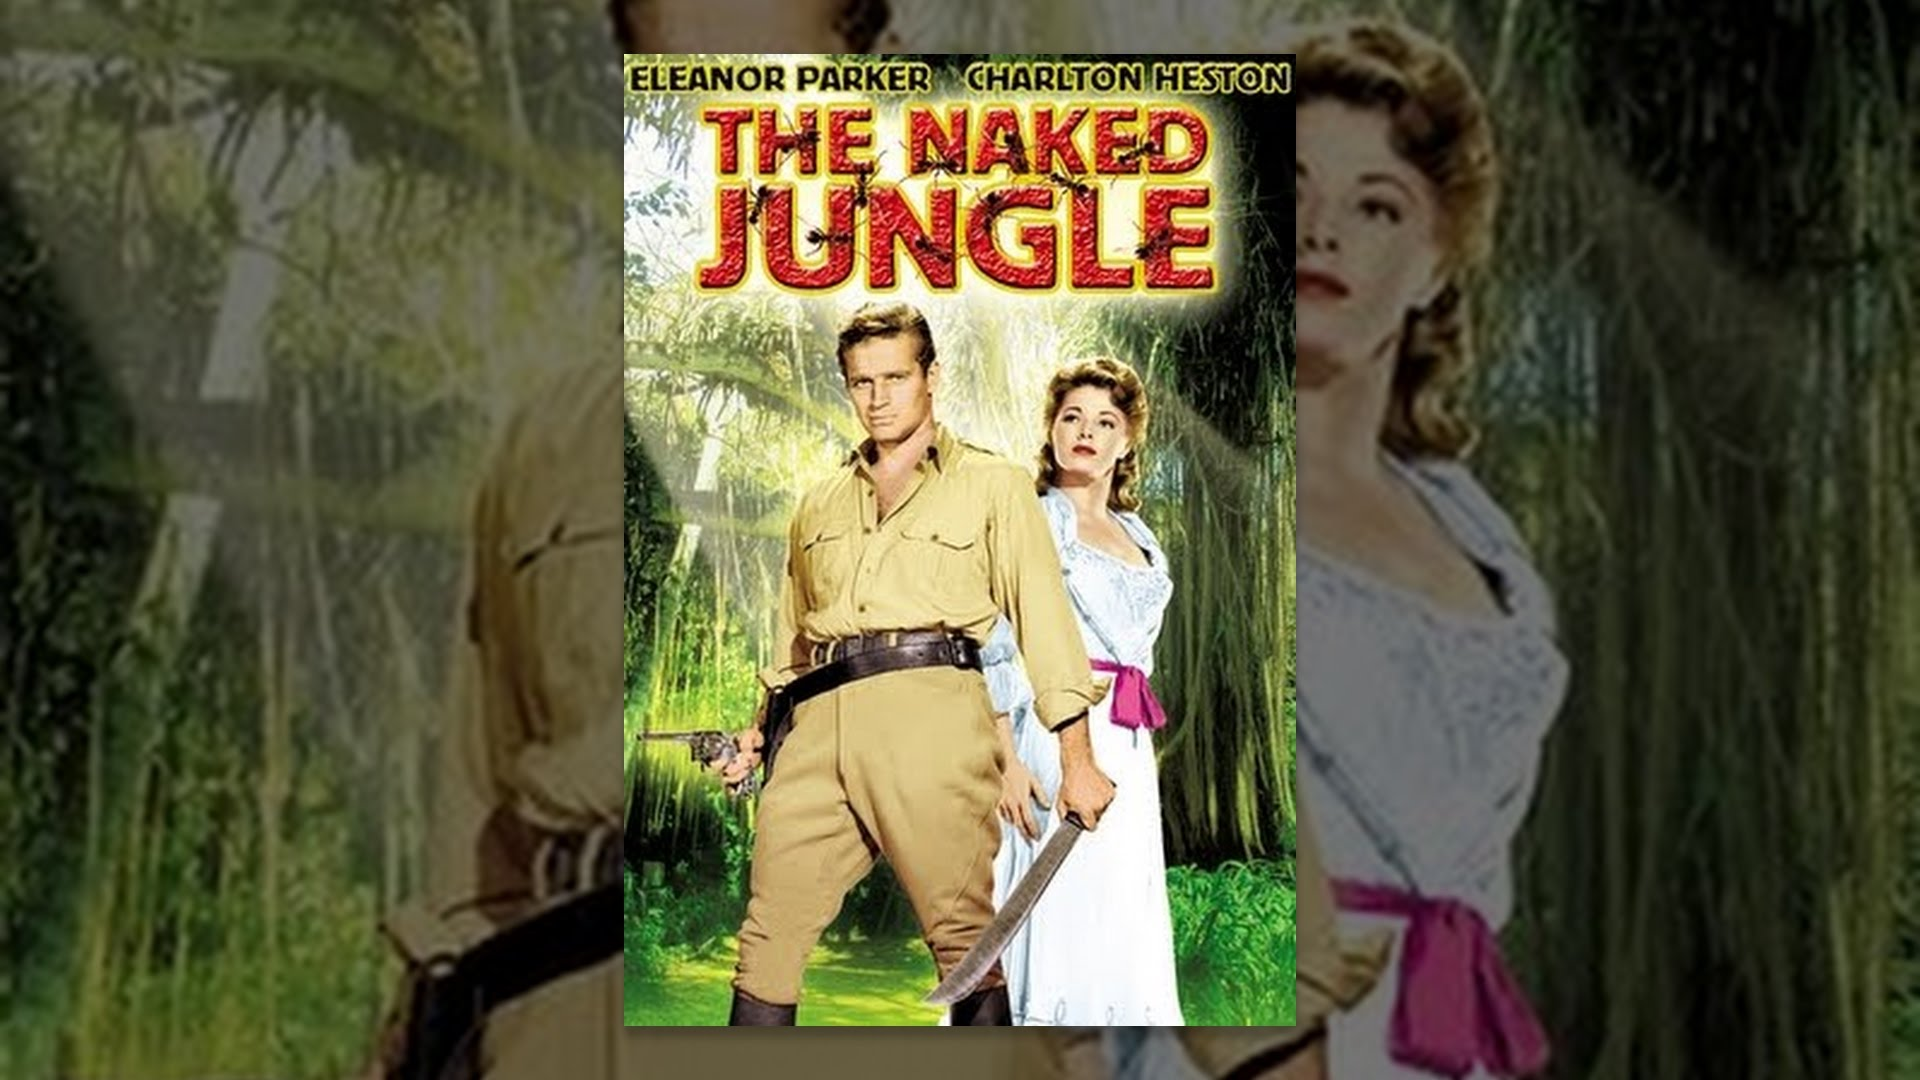 Simply the naked jungle movie